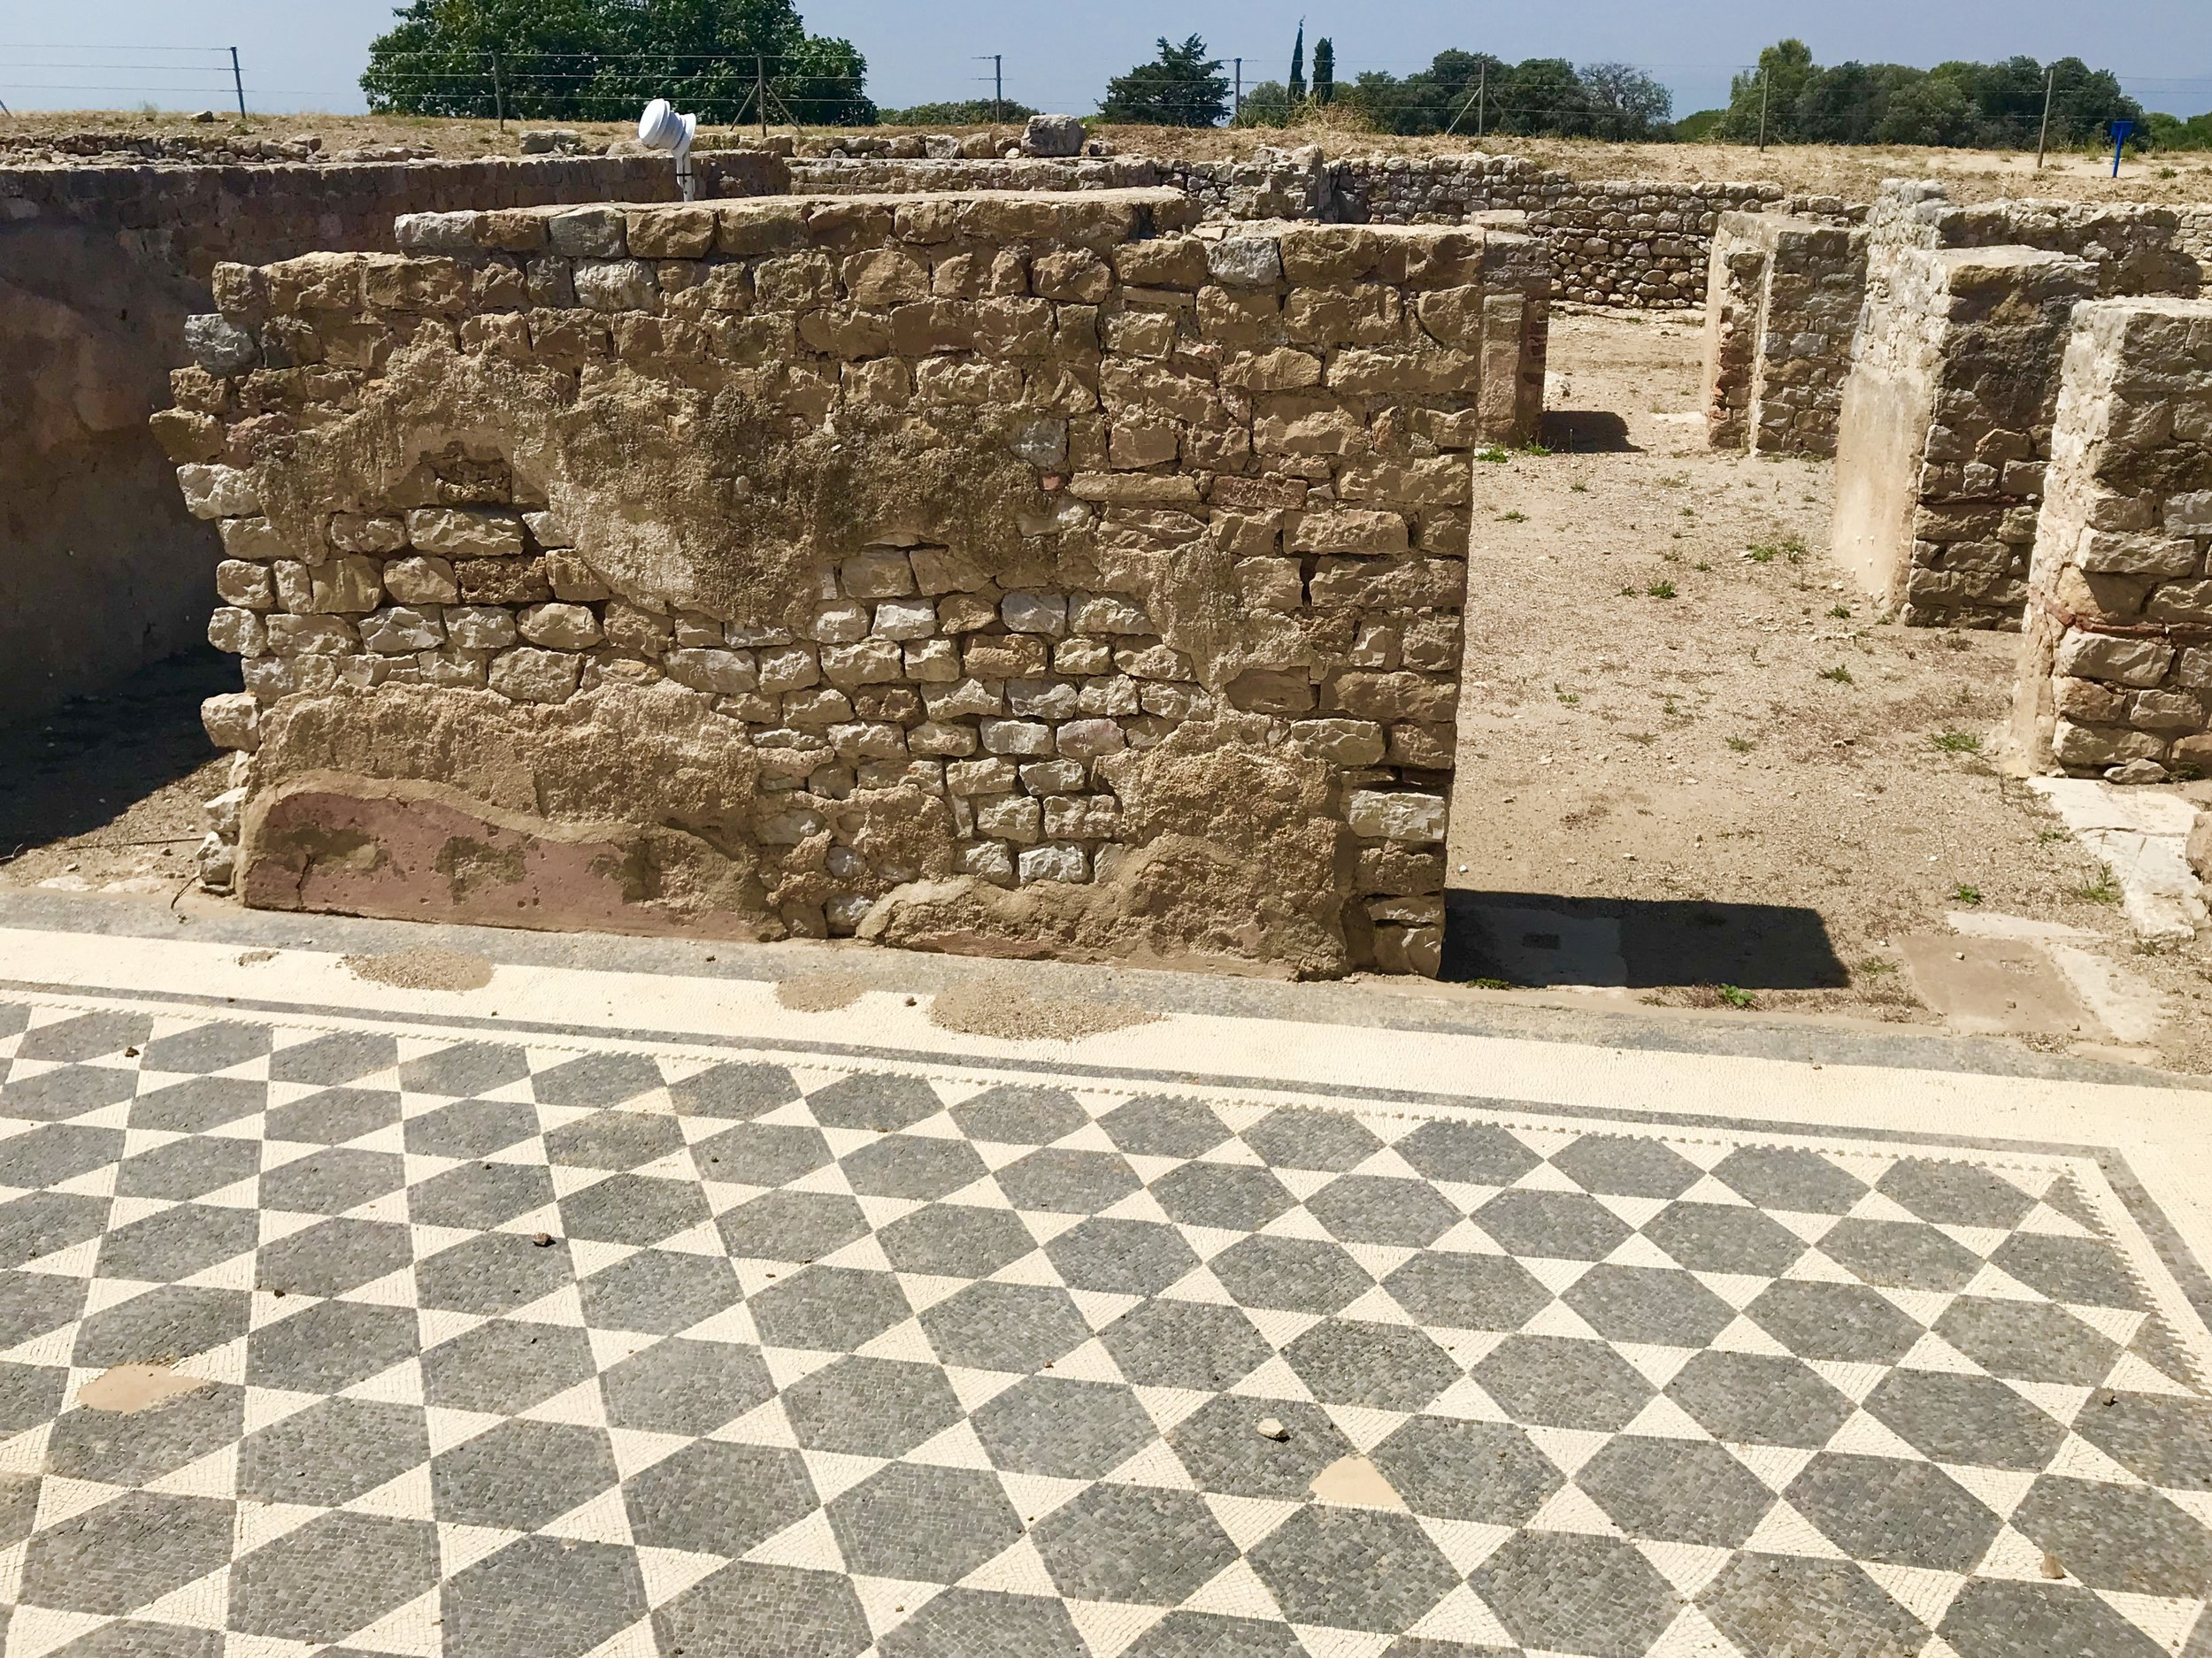 One of a multitude or fantastic mosaic floors in the Roman city ruins at Empúries.